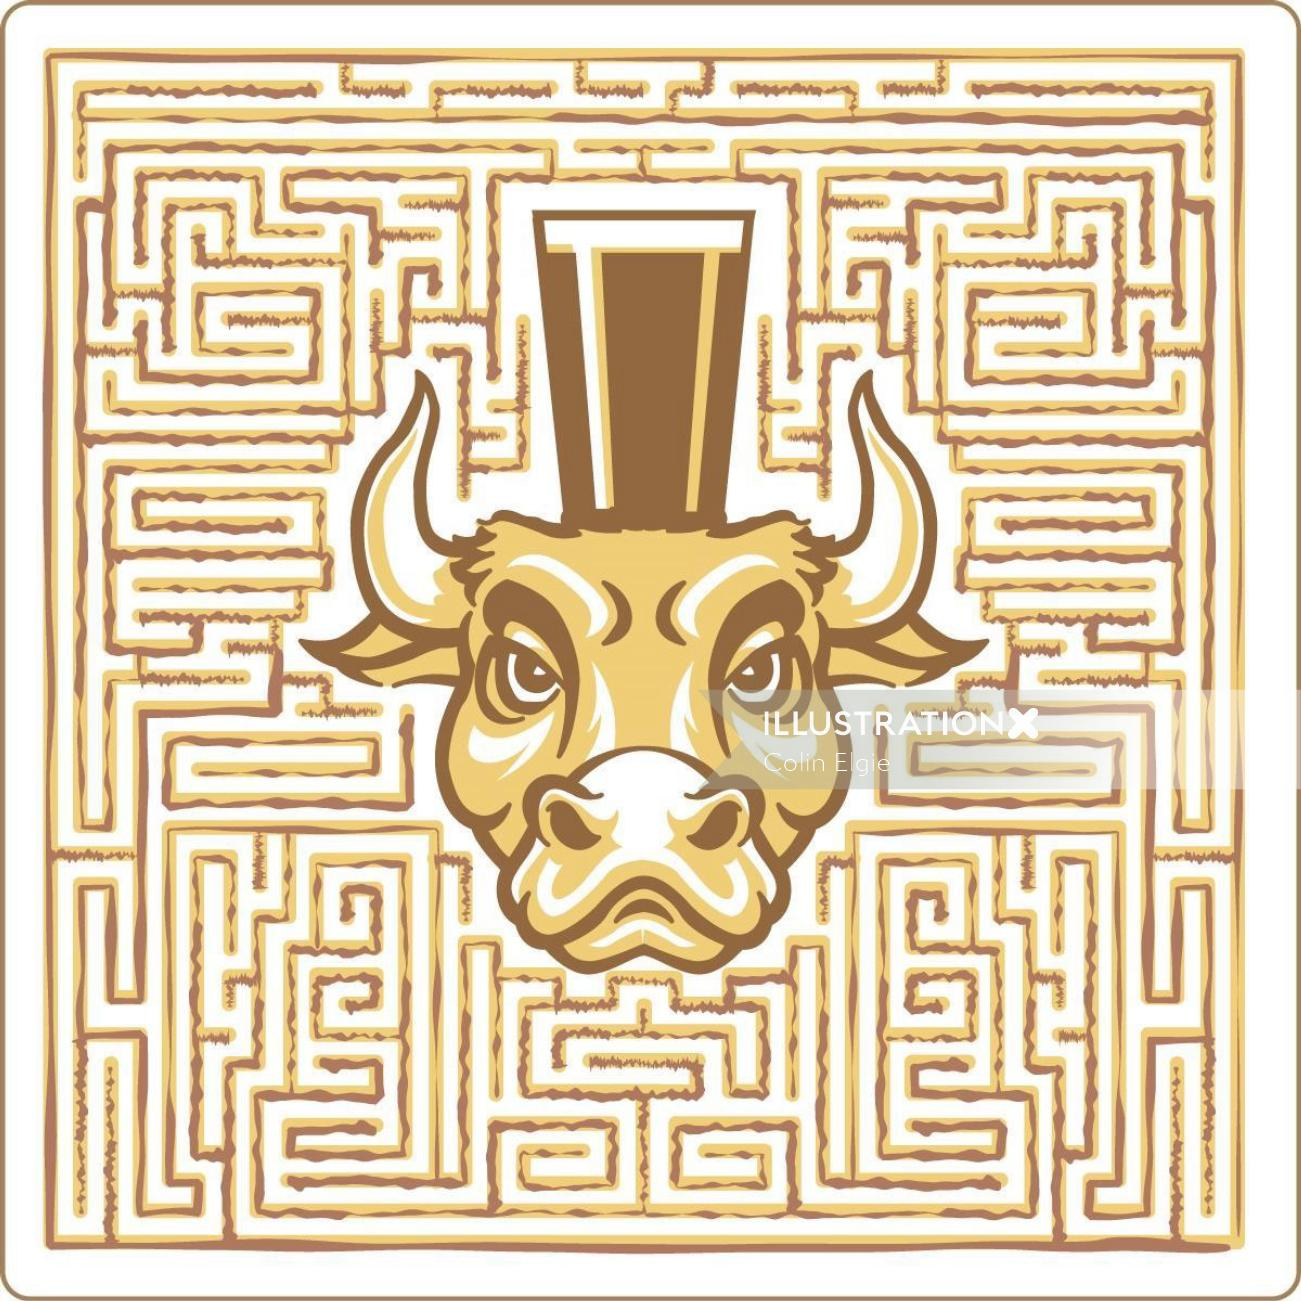 Minotaur in Labyrinth Graphic poster